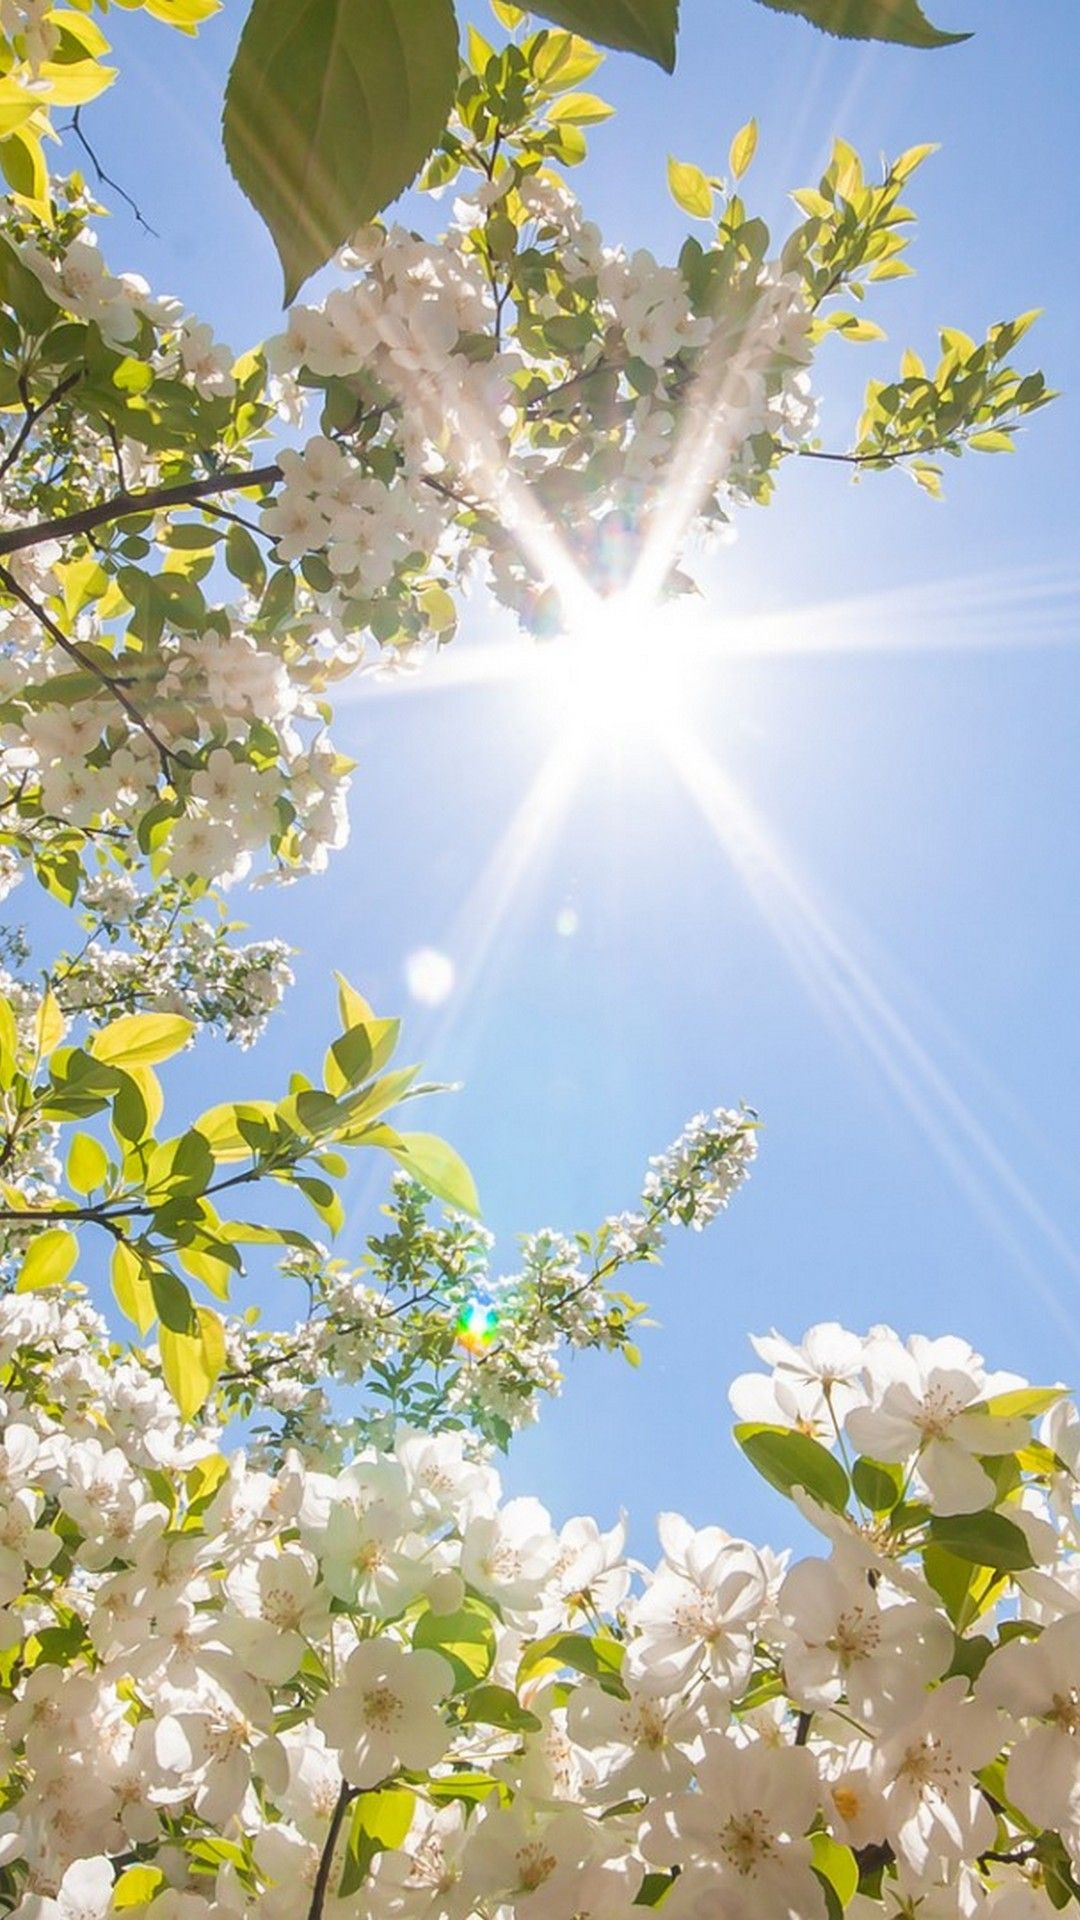 Hello Spring Wallpaper For iPhone | iPhoneWallpapers | Spring flowers wallpaper, Spring ...